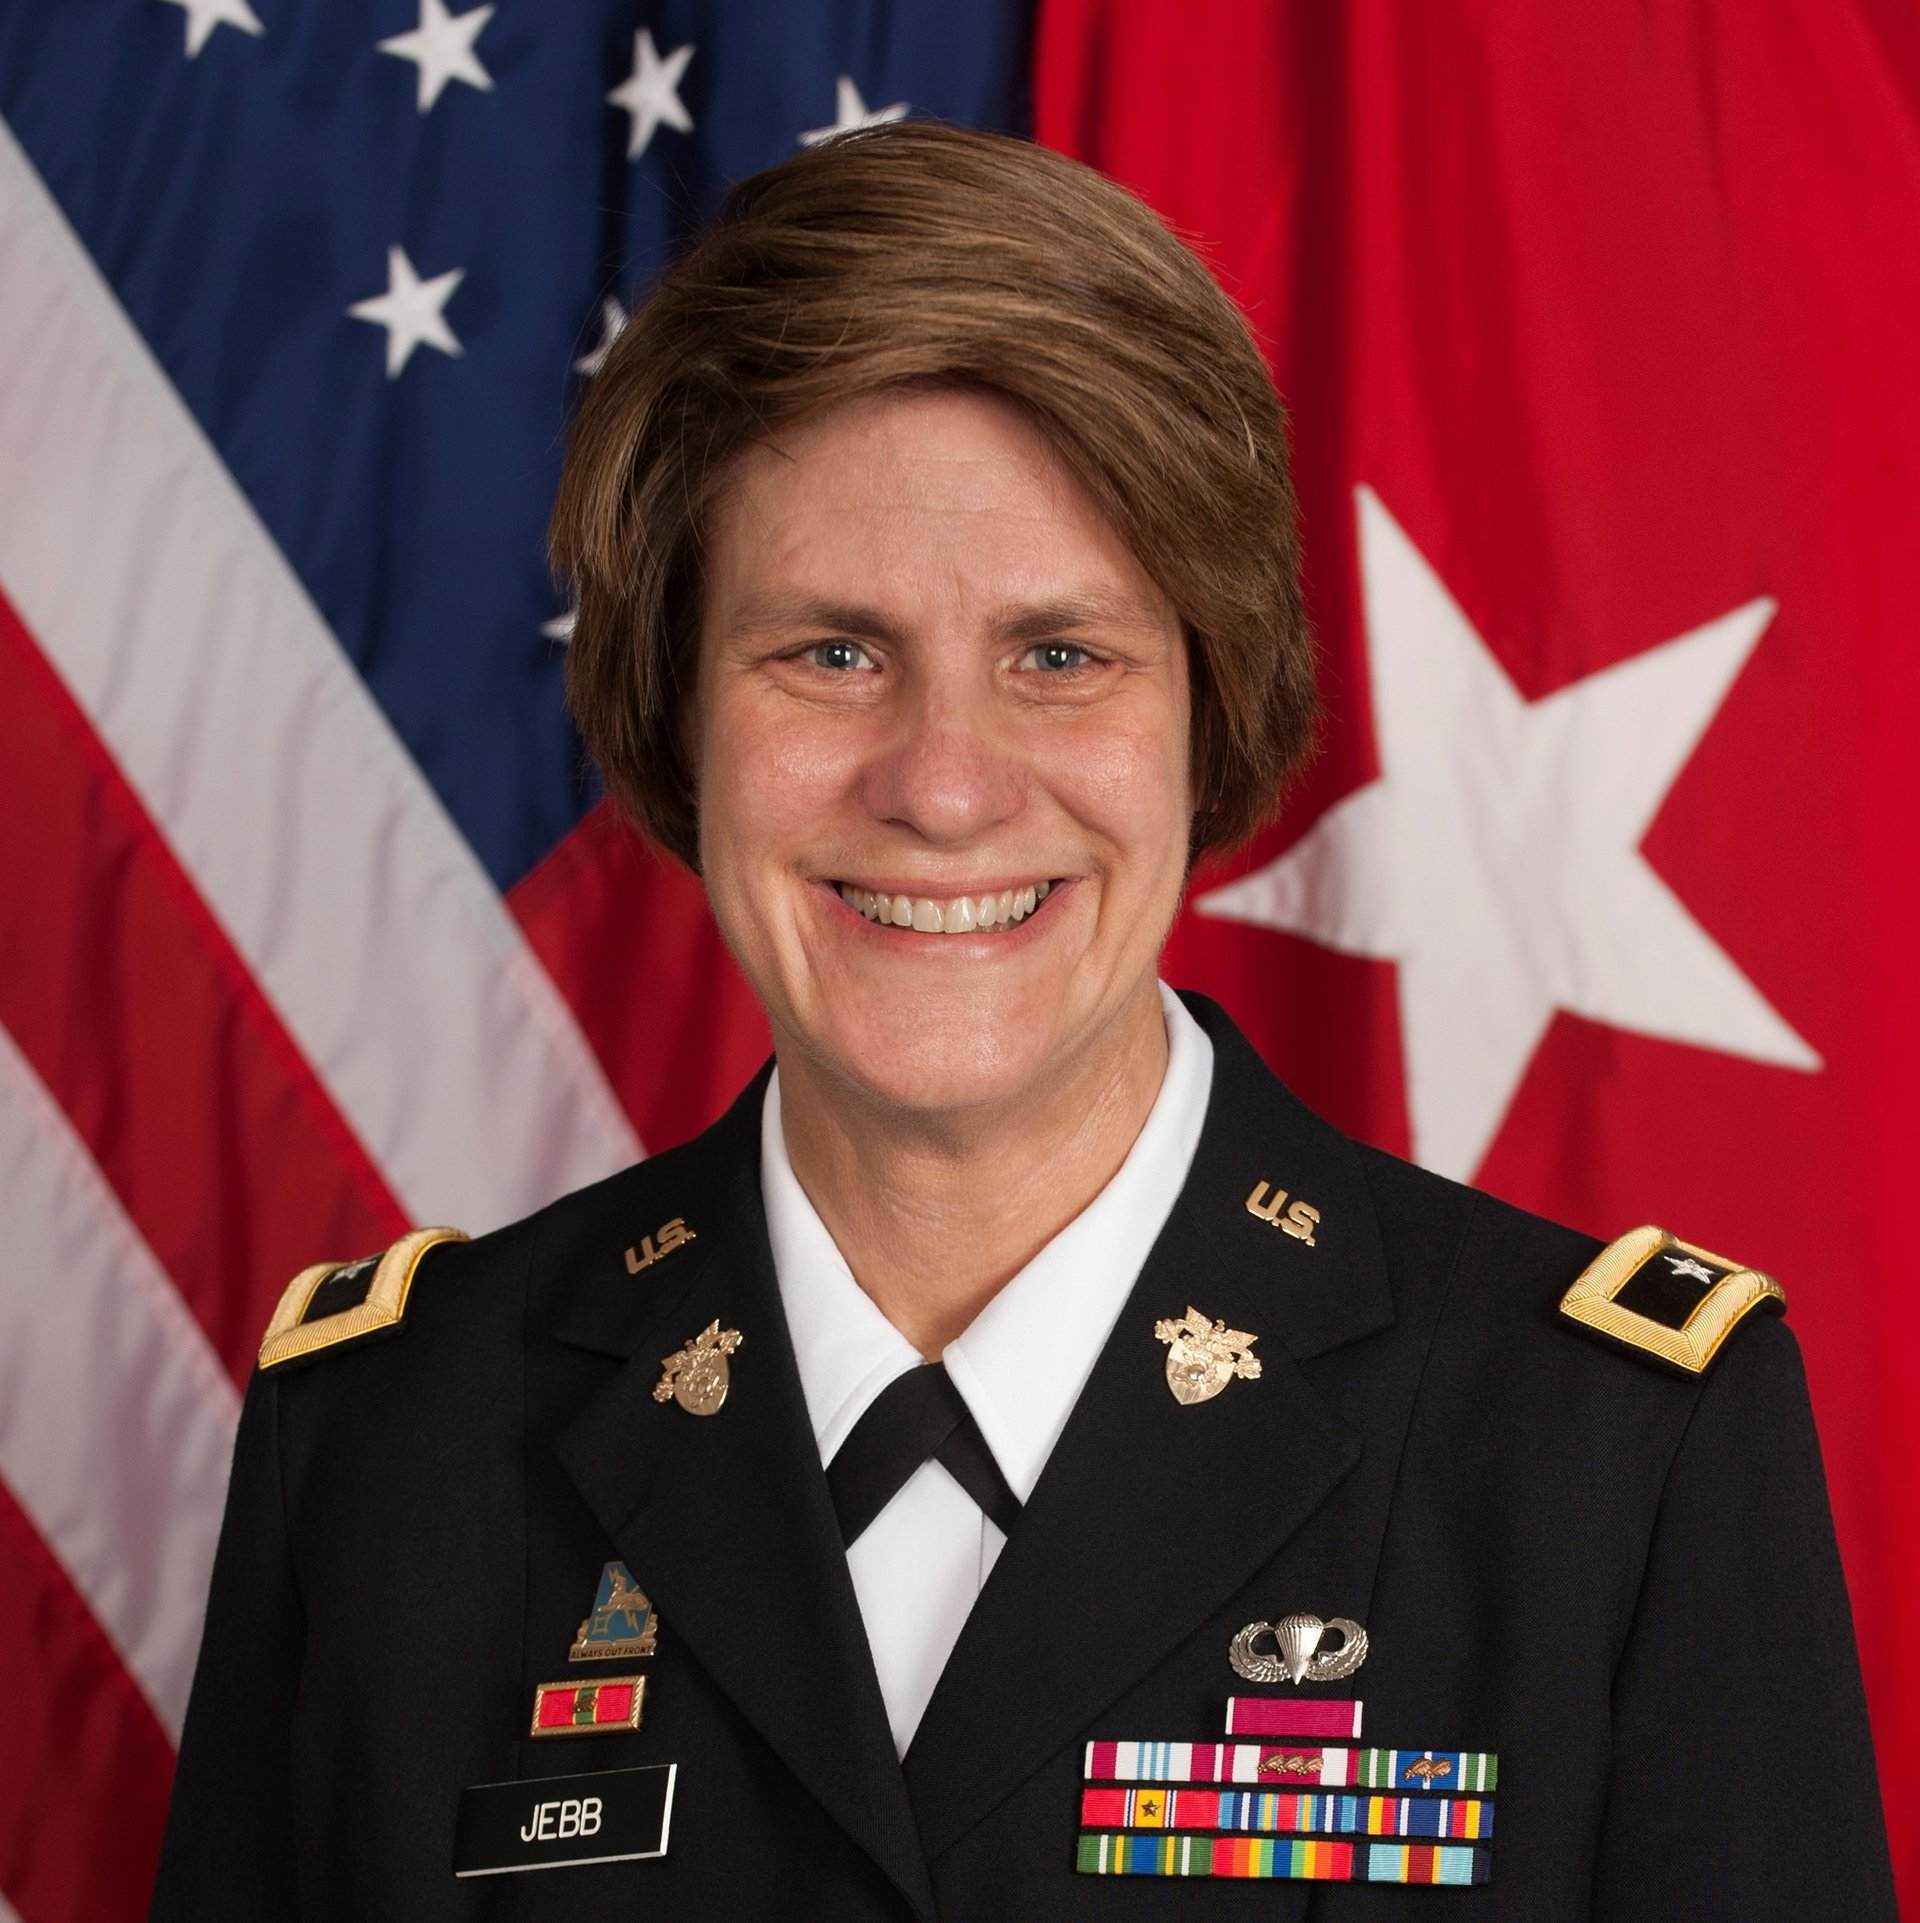 Brigadier General Cindy Jebb